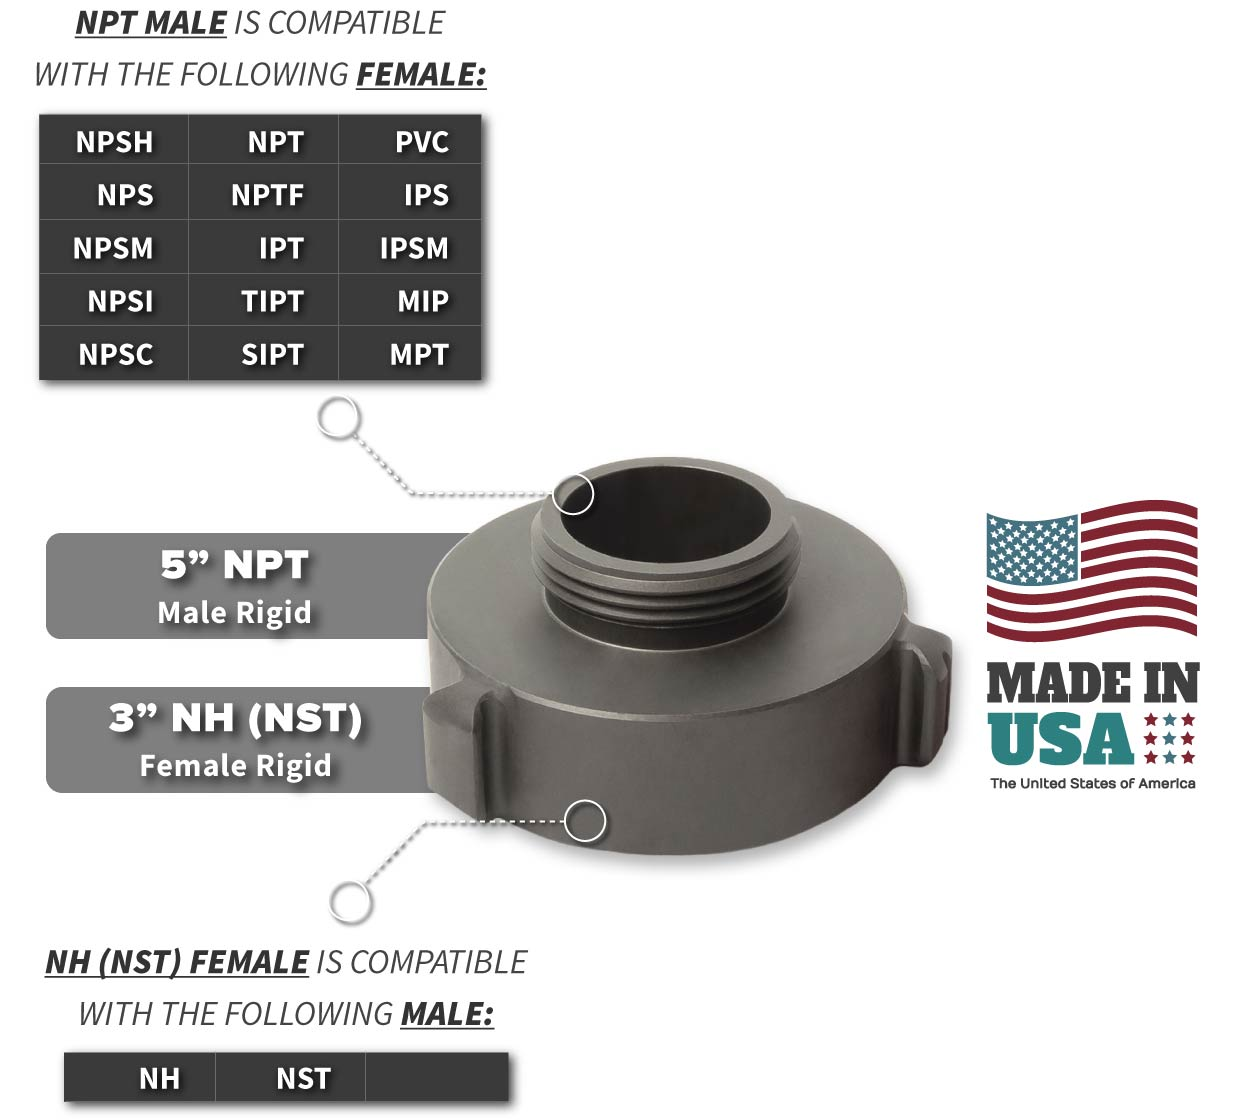 3 Inch NH-NST Female x 5 Inch NPT Male Compatibility Thread Chart